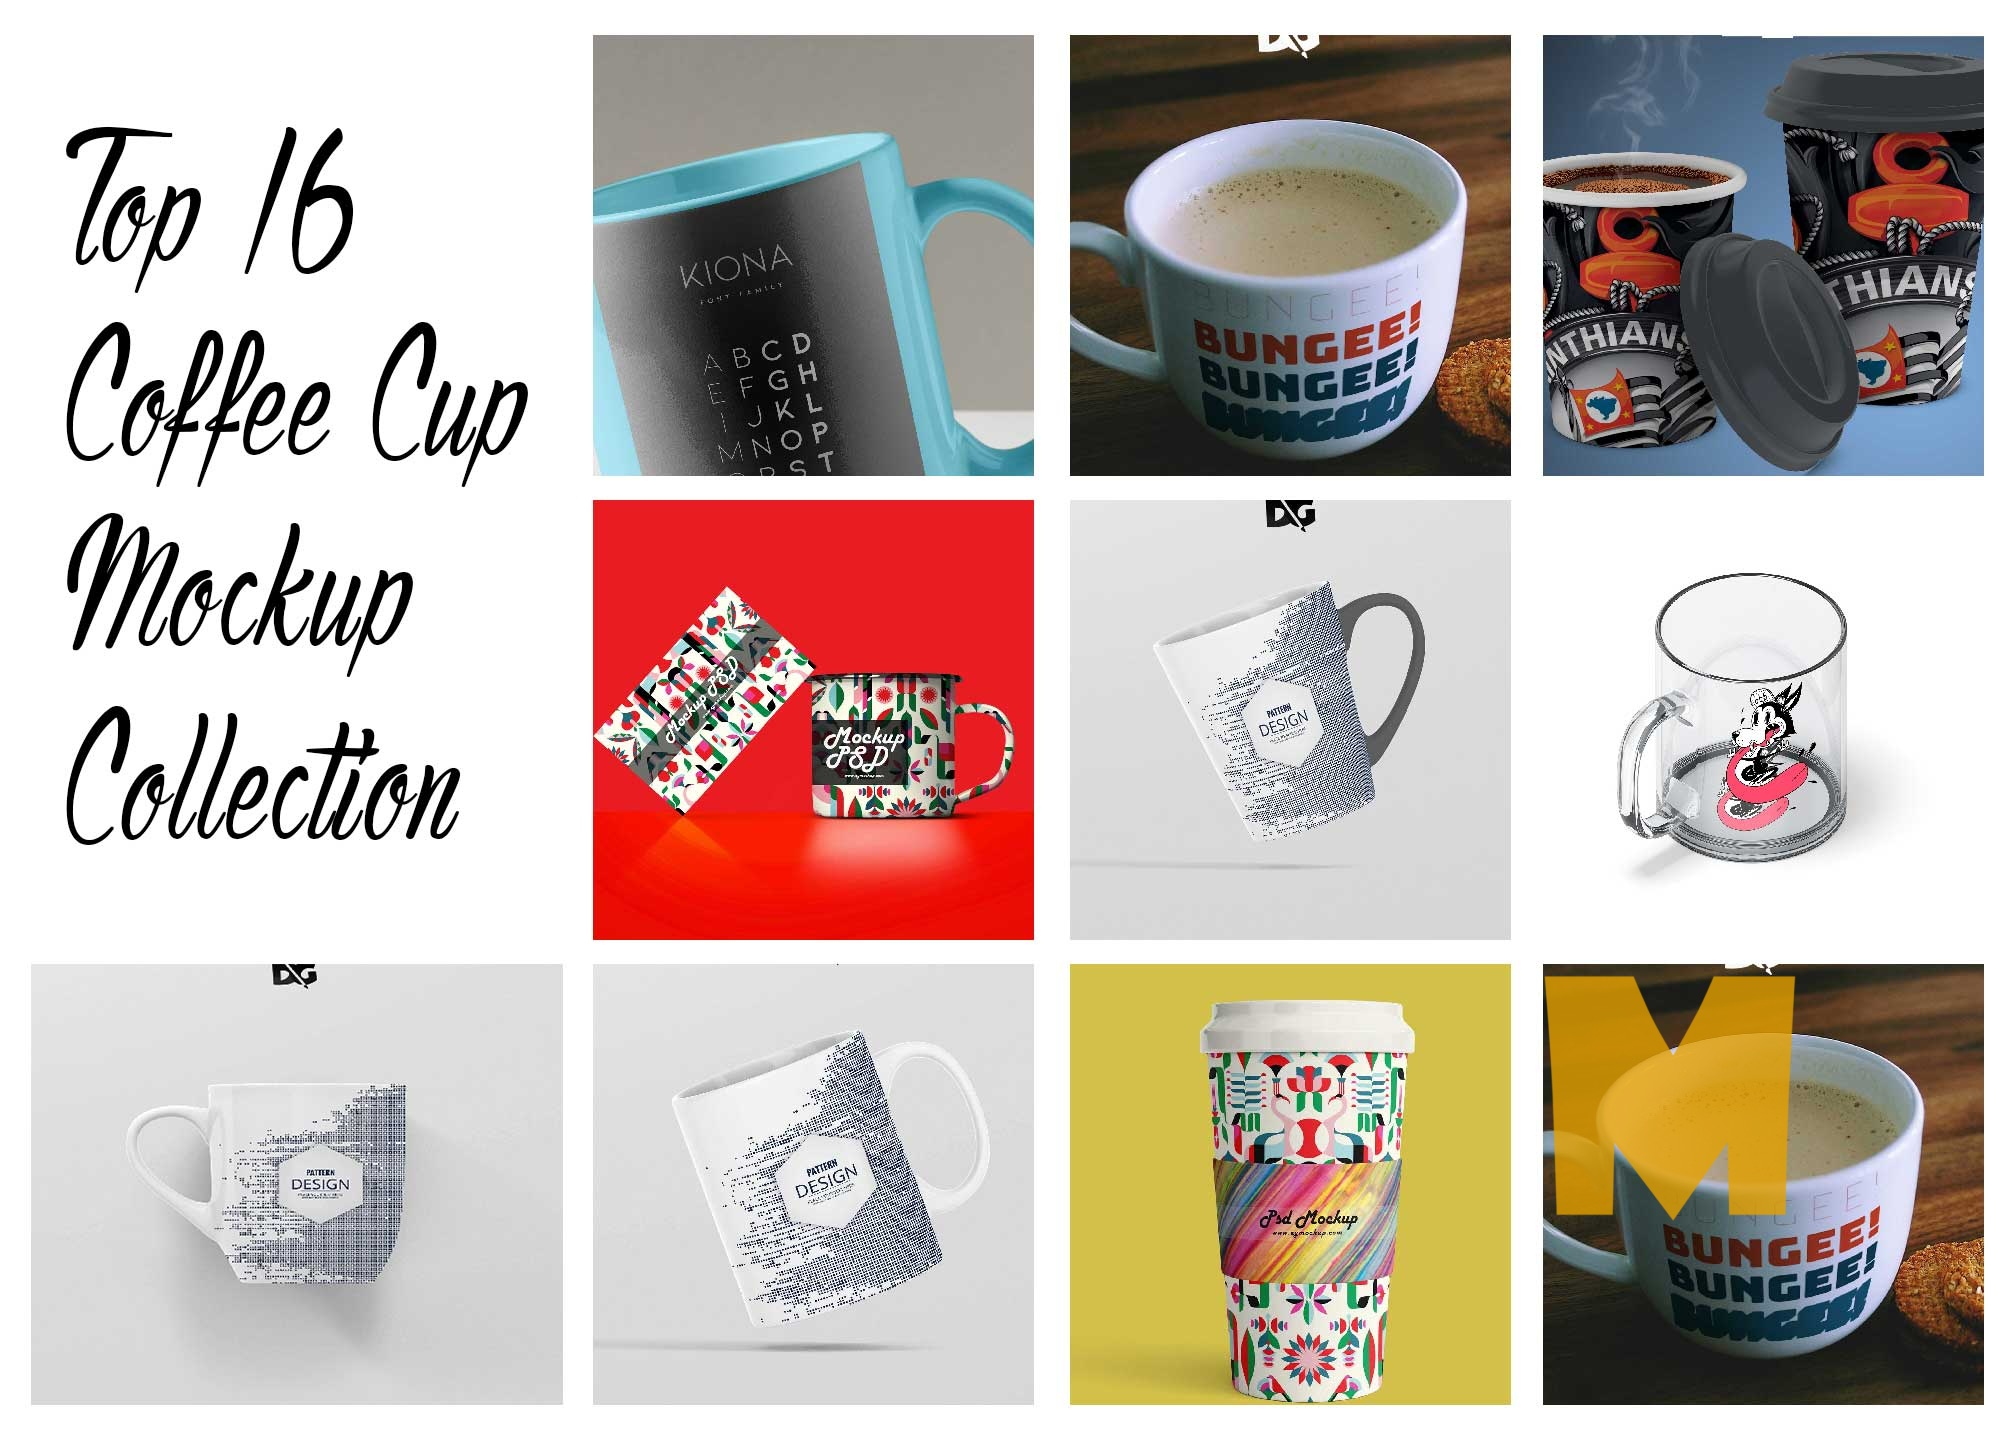 Top 16 Coffee Cup Mockup Collection 2016